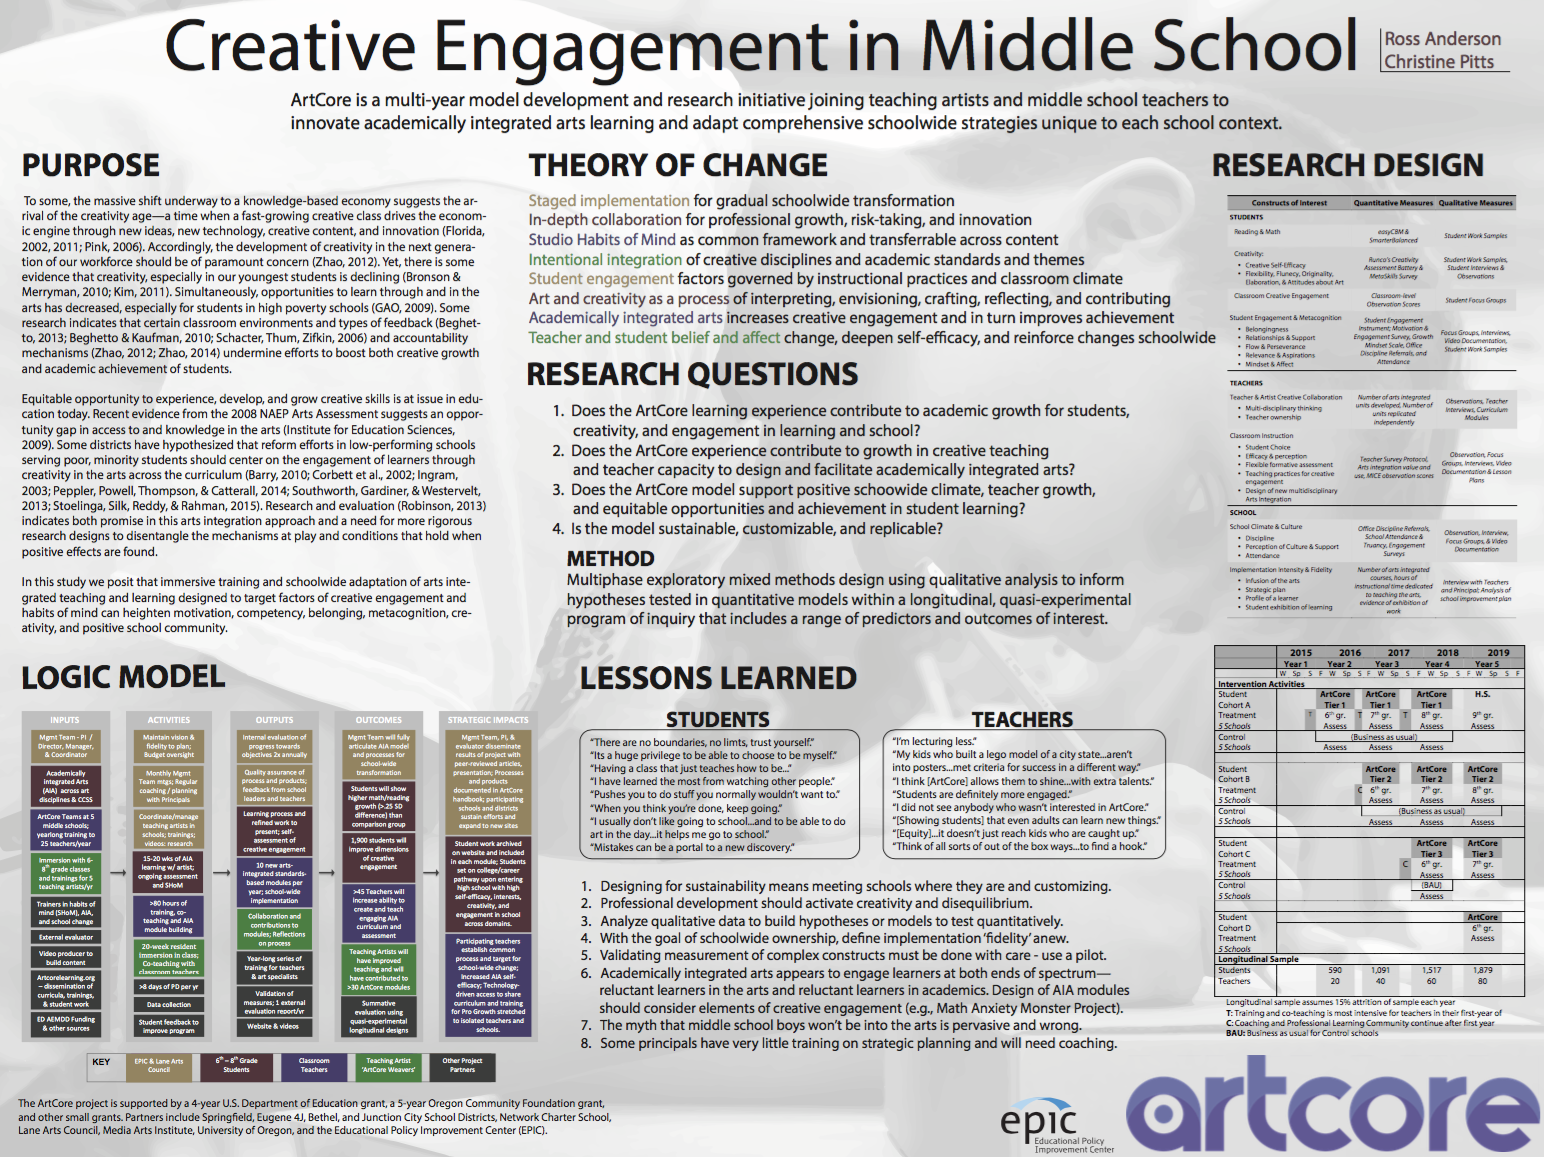 ArtCore Research Design - Presented at the American Education Research Association's 2016 Annual Meeting, this poster provides the theory of change, rationale, and research design in the ArtCore project.